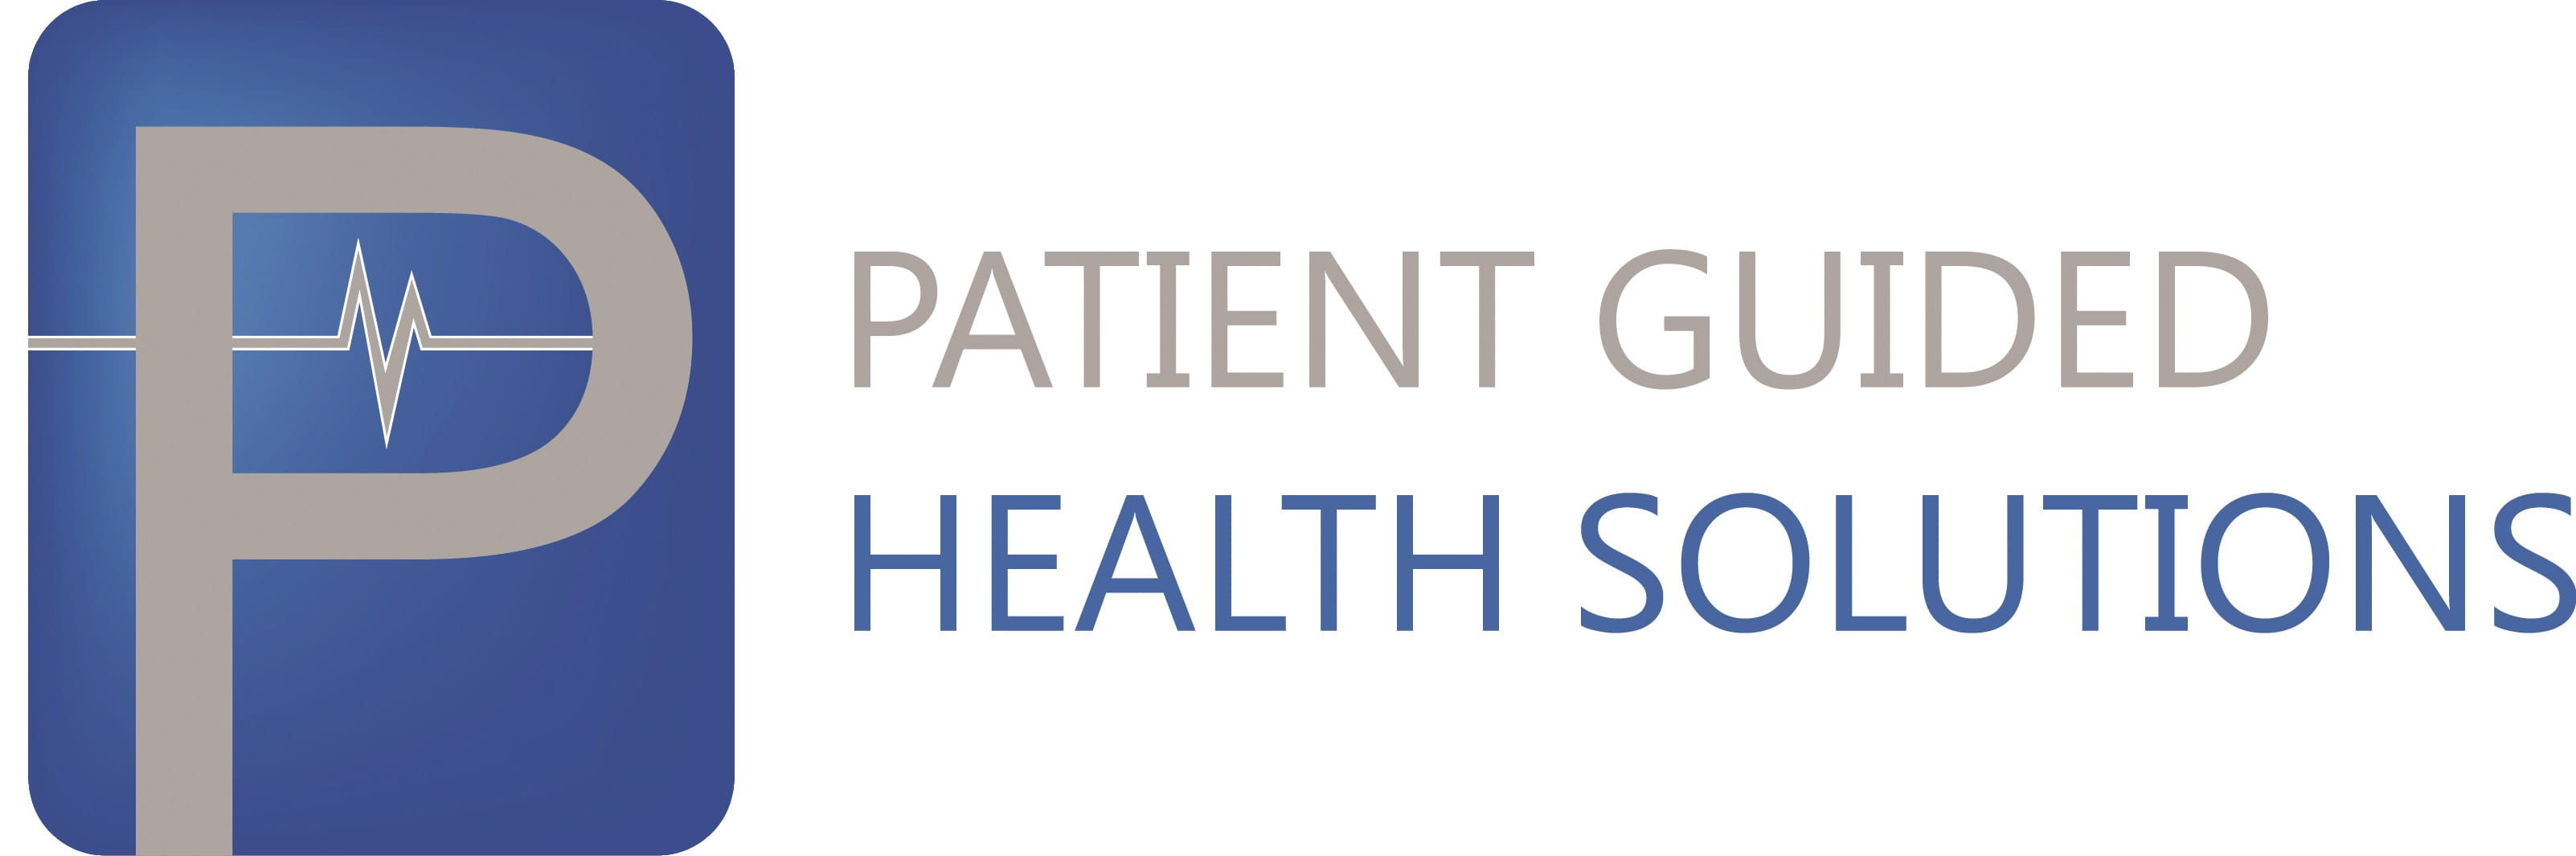 Patient Guided Health Solutions Logo